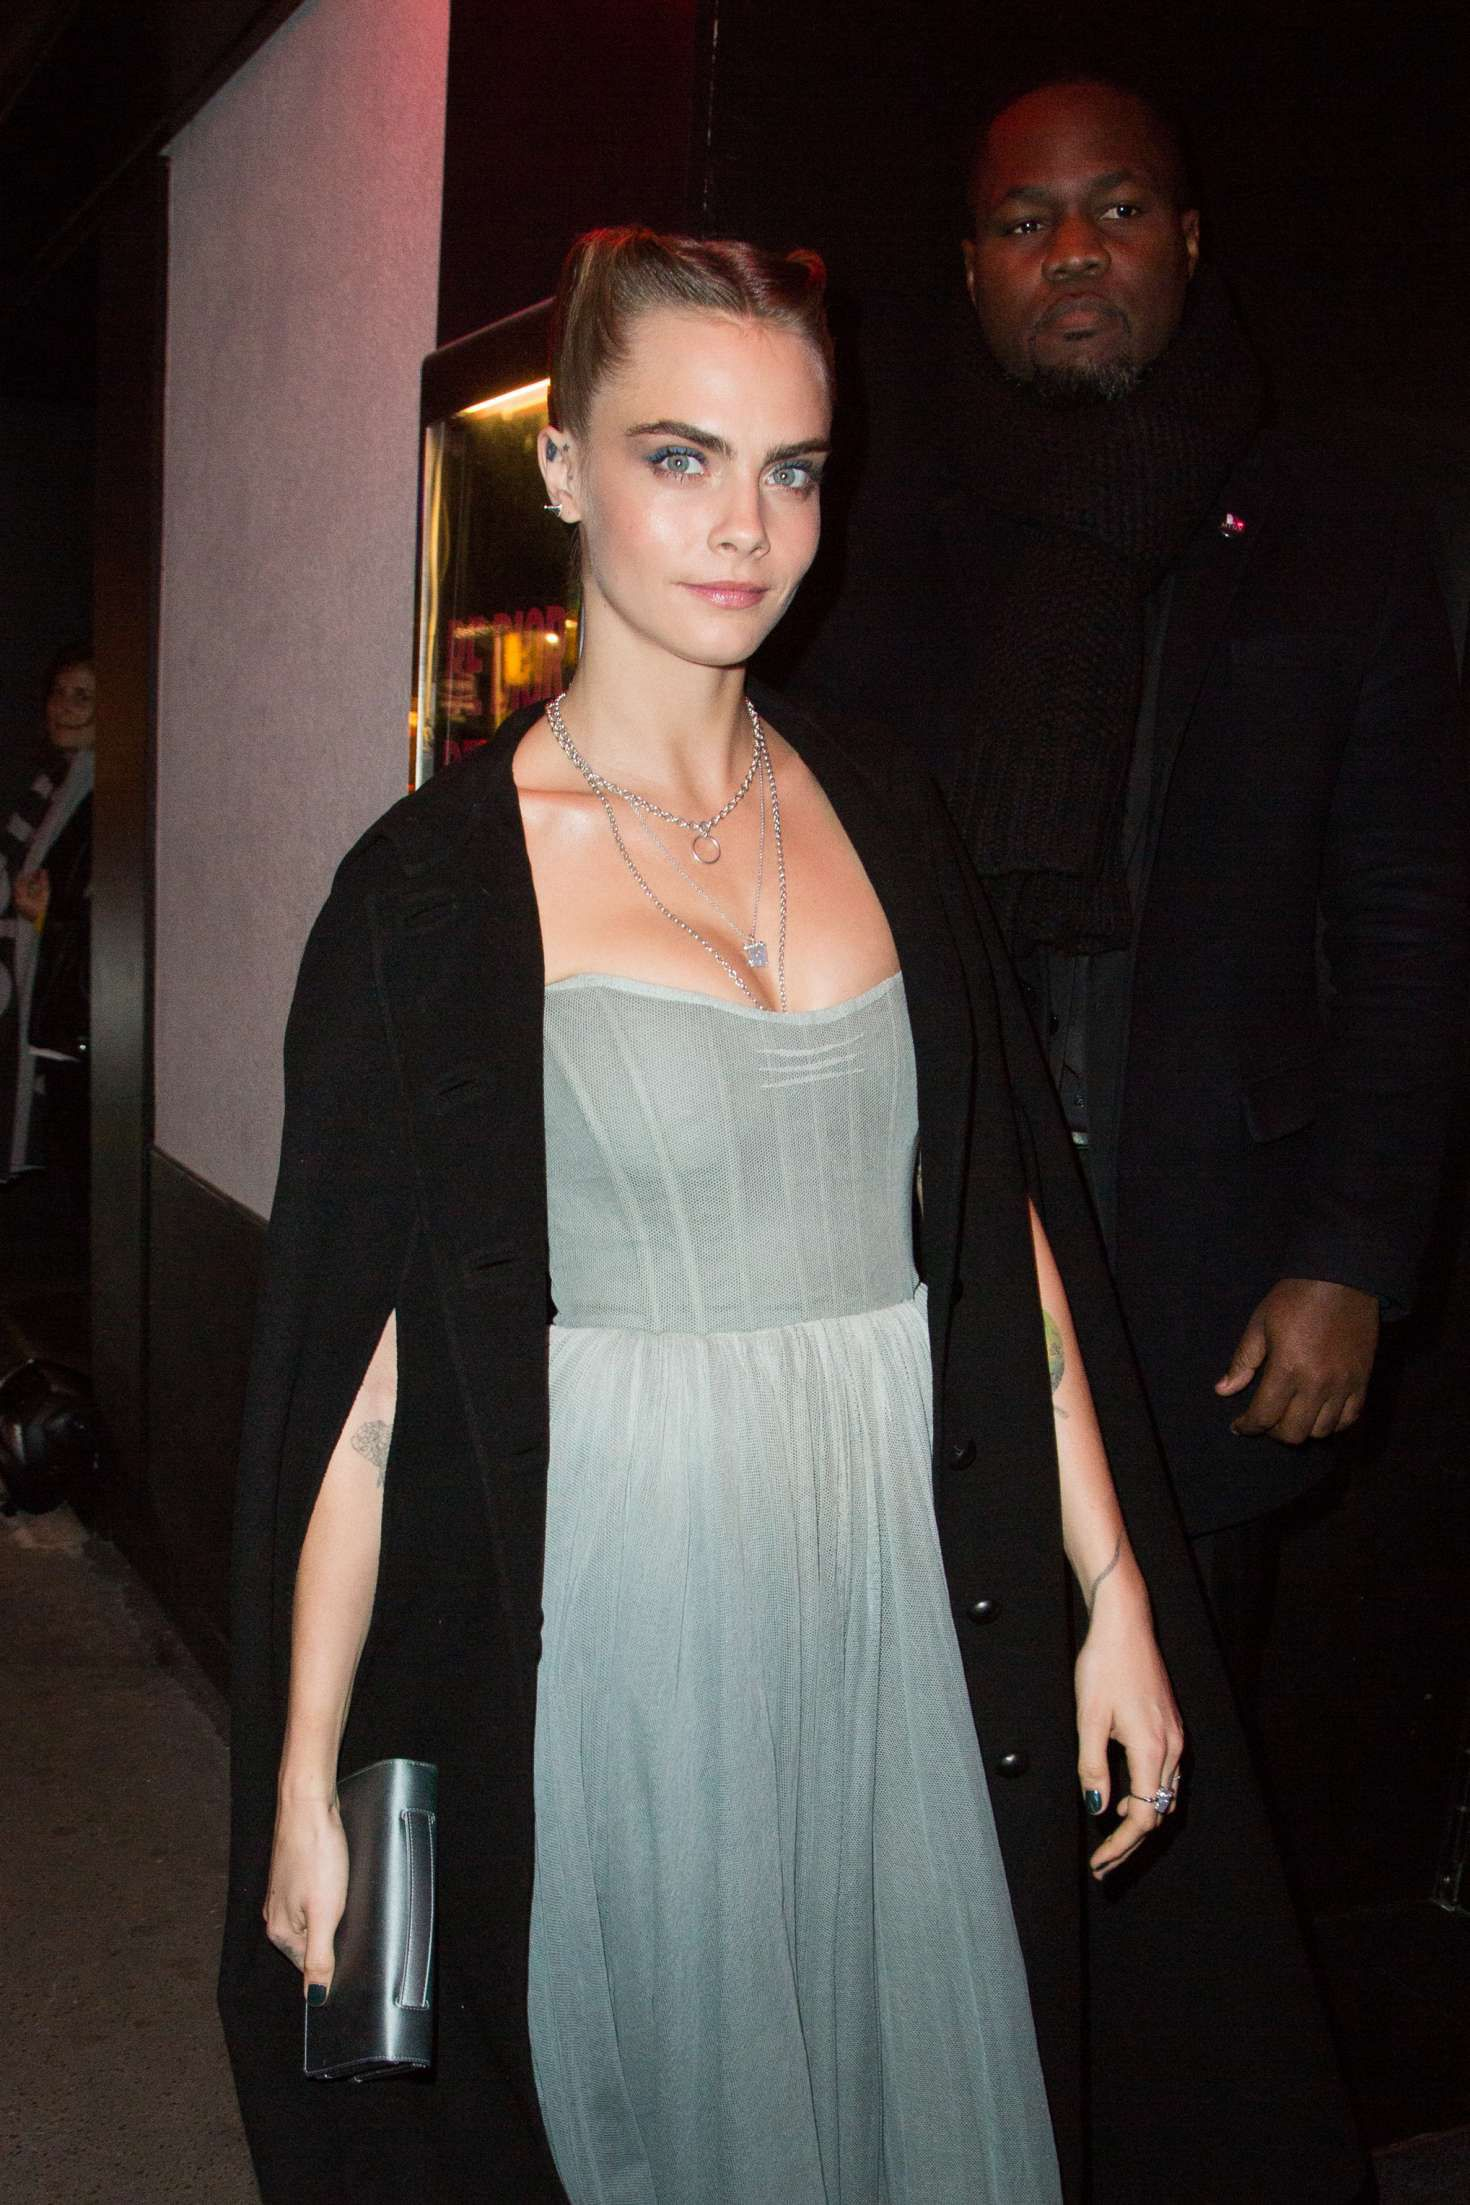 Cara Delevigne with short hairstyle at the PFW in Paris, 2019